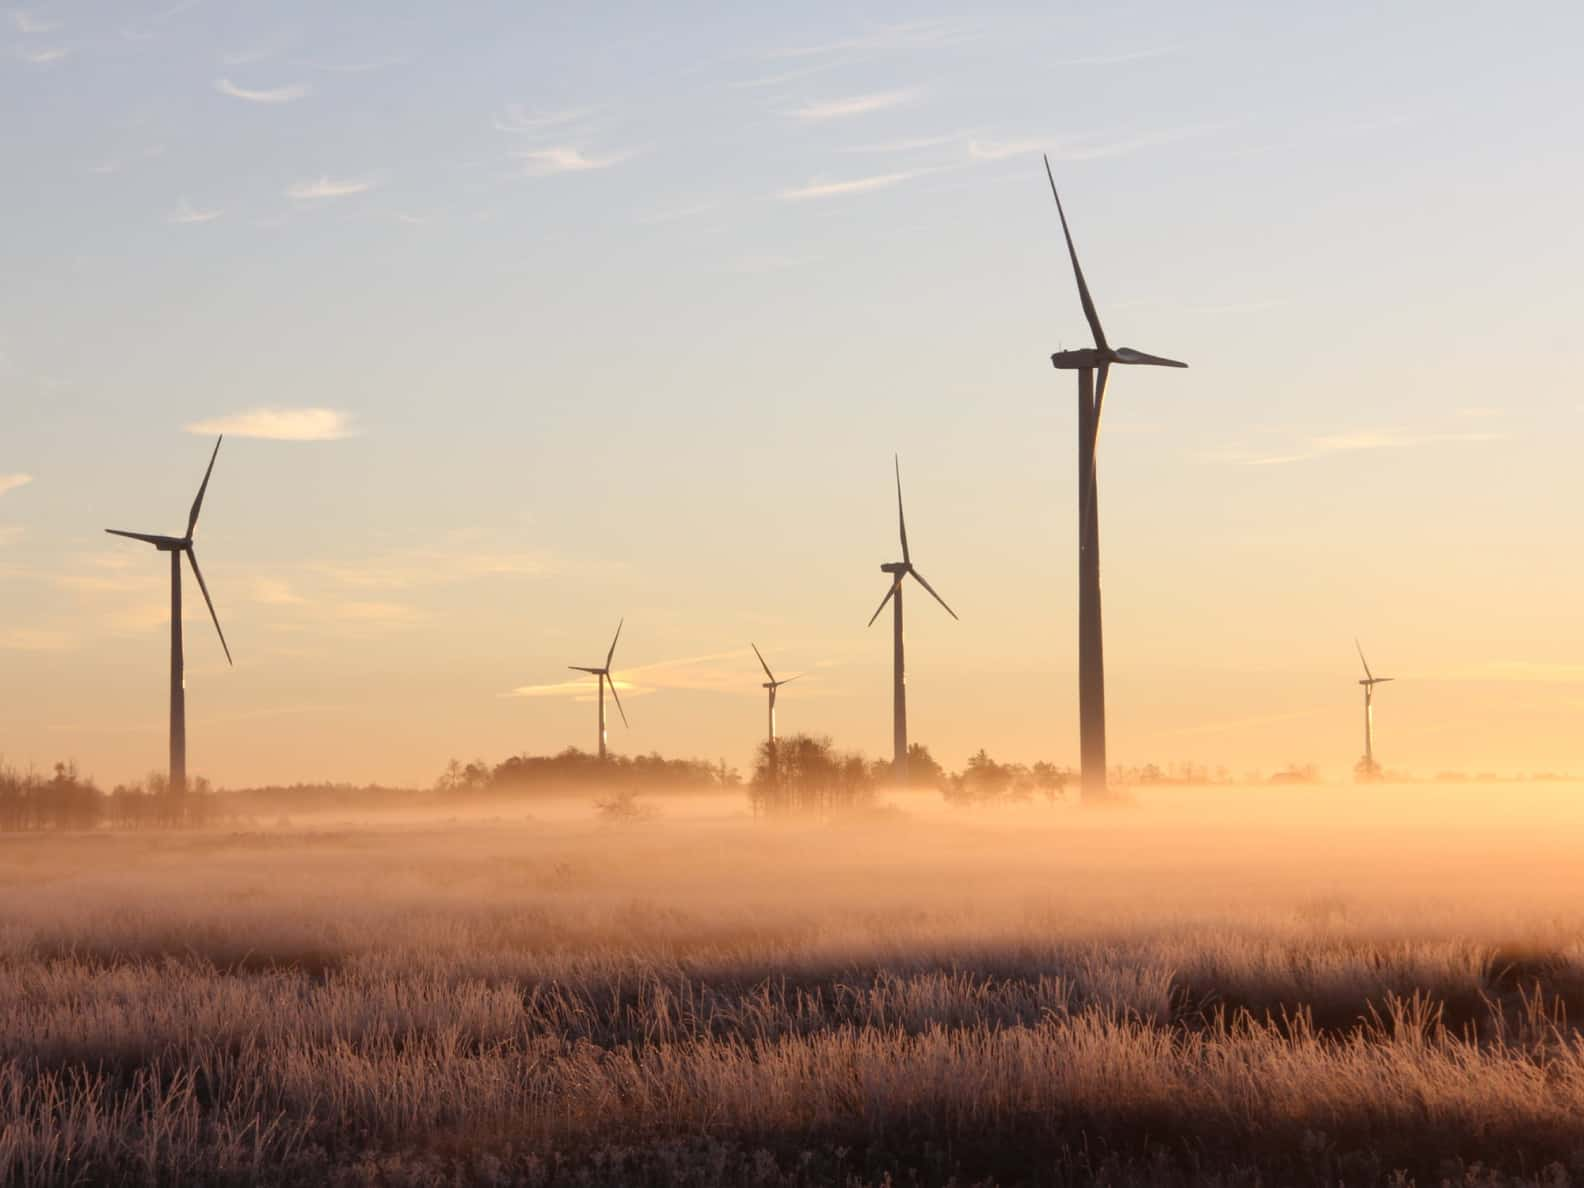 A wind power farm at sunset.